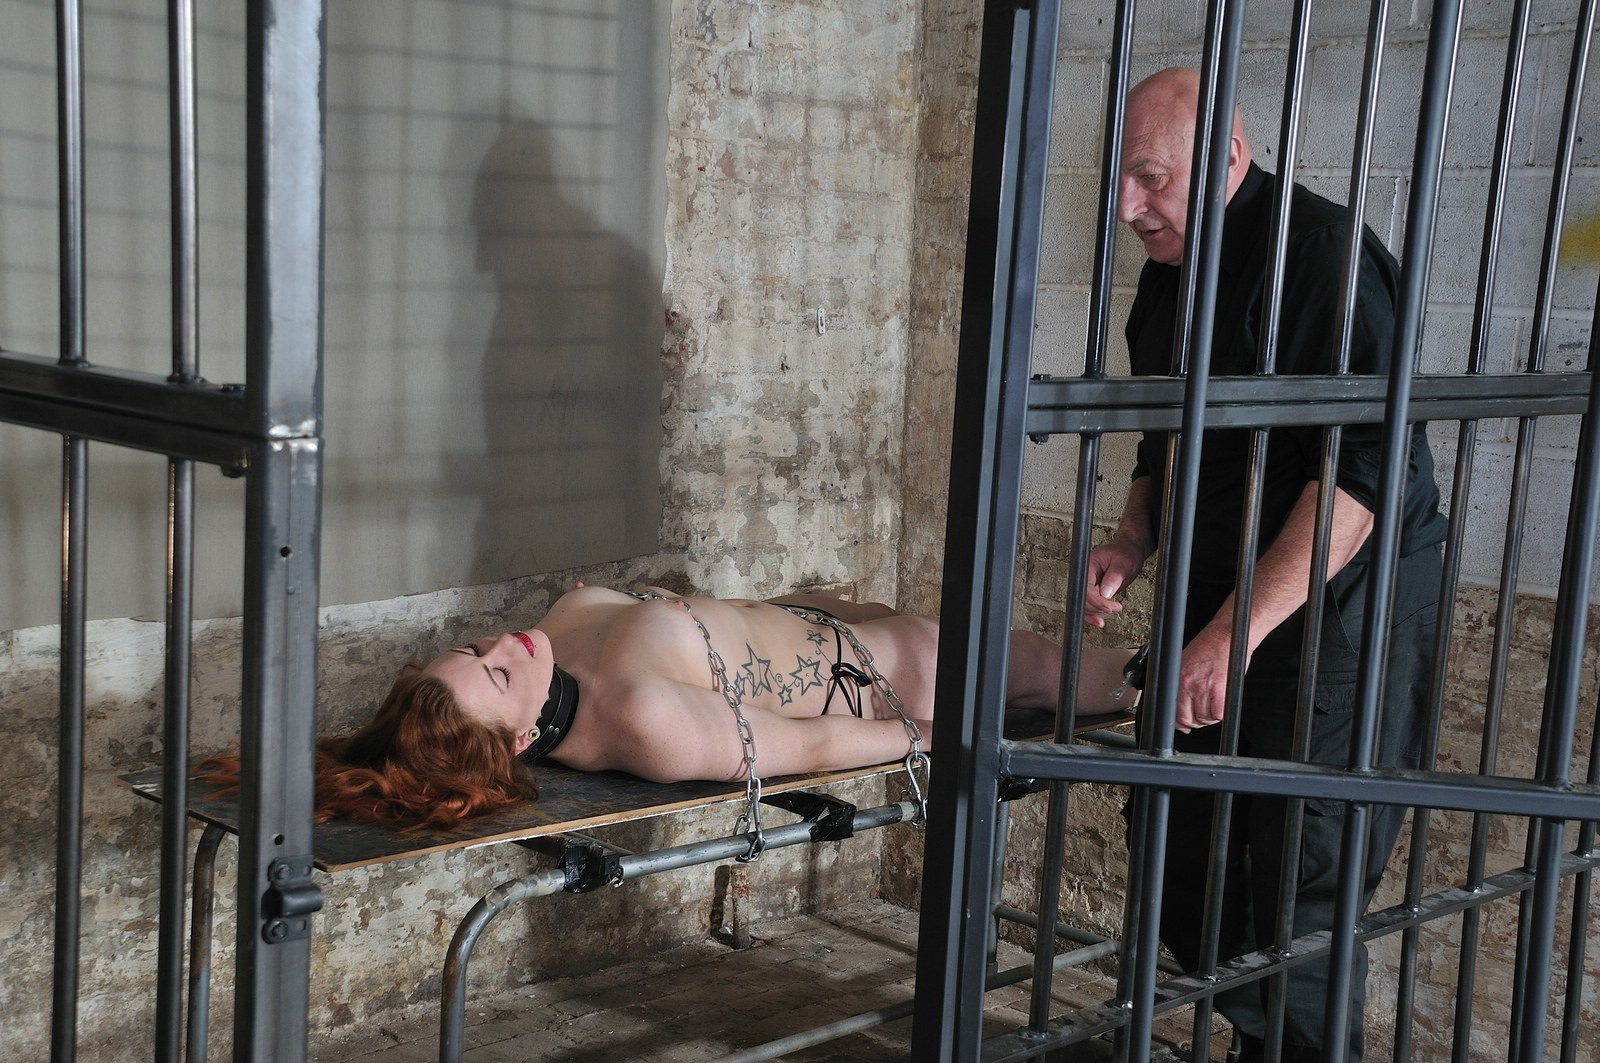 Opinion Bdsm prison thumbs